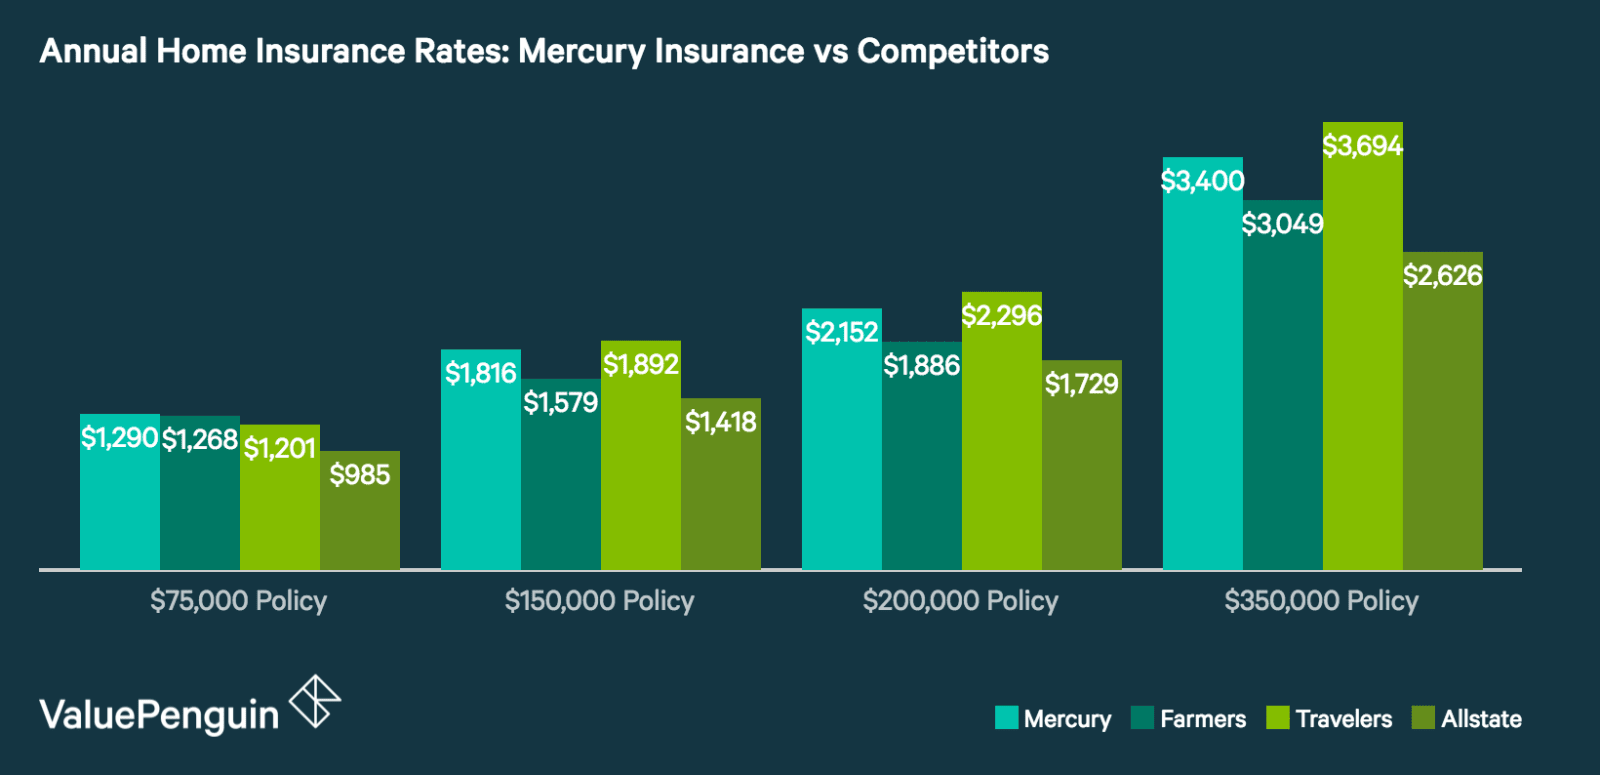 Mercury Home Insurance >> Mercury Insurance Review Great Rates For Drivers Not So Much For